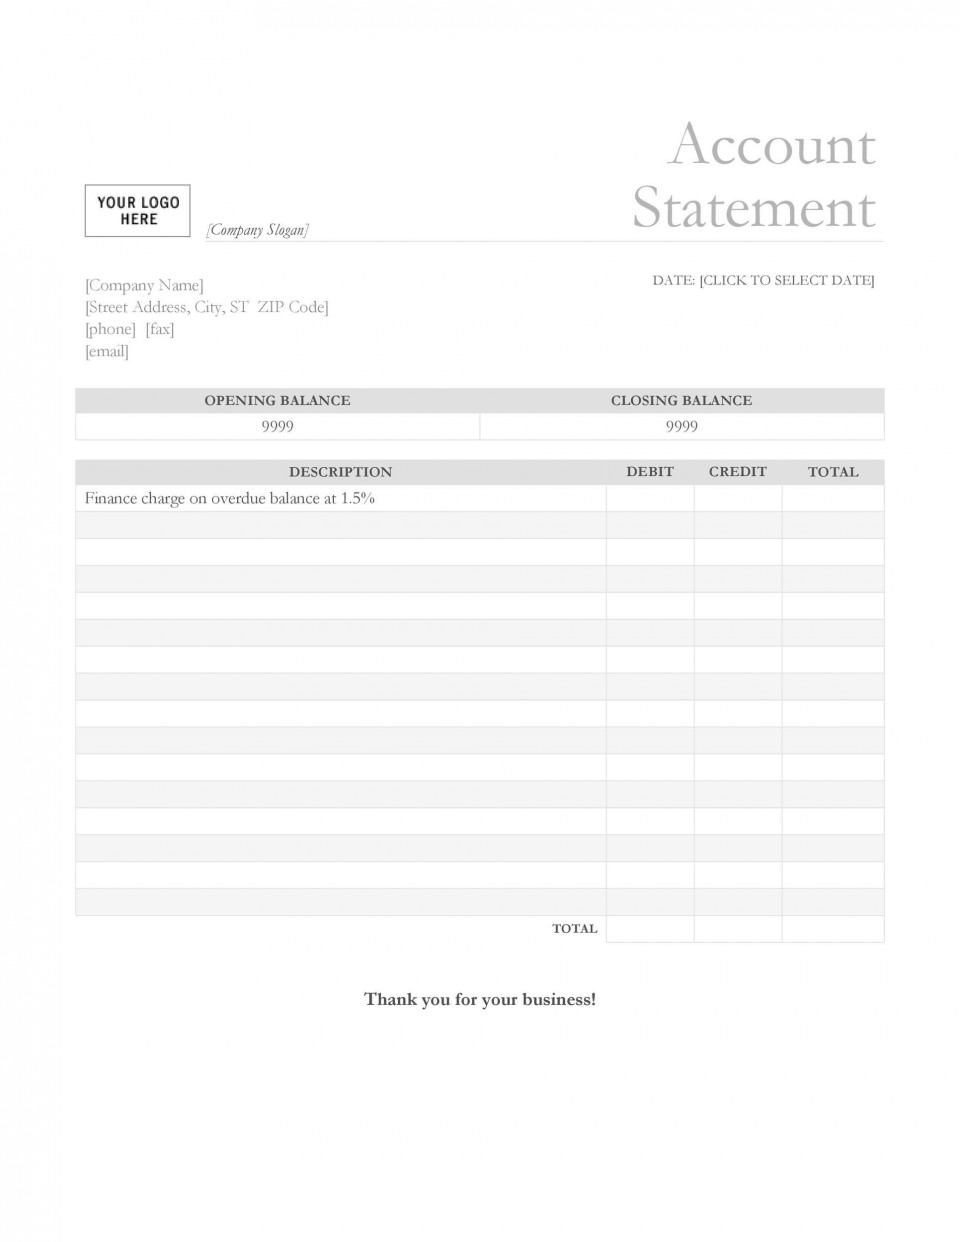 003 Exceptional Statement Of Account Template Photo  Uk Free Doc Customer960